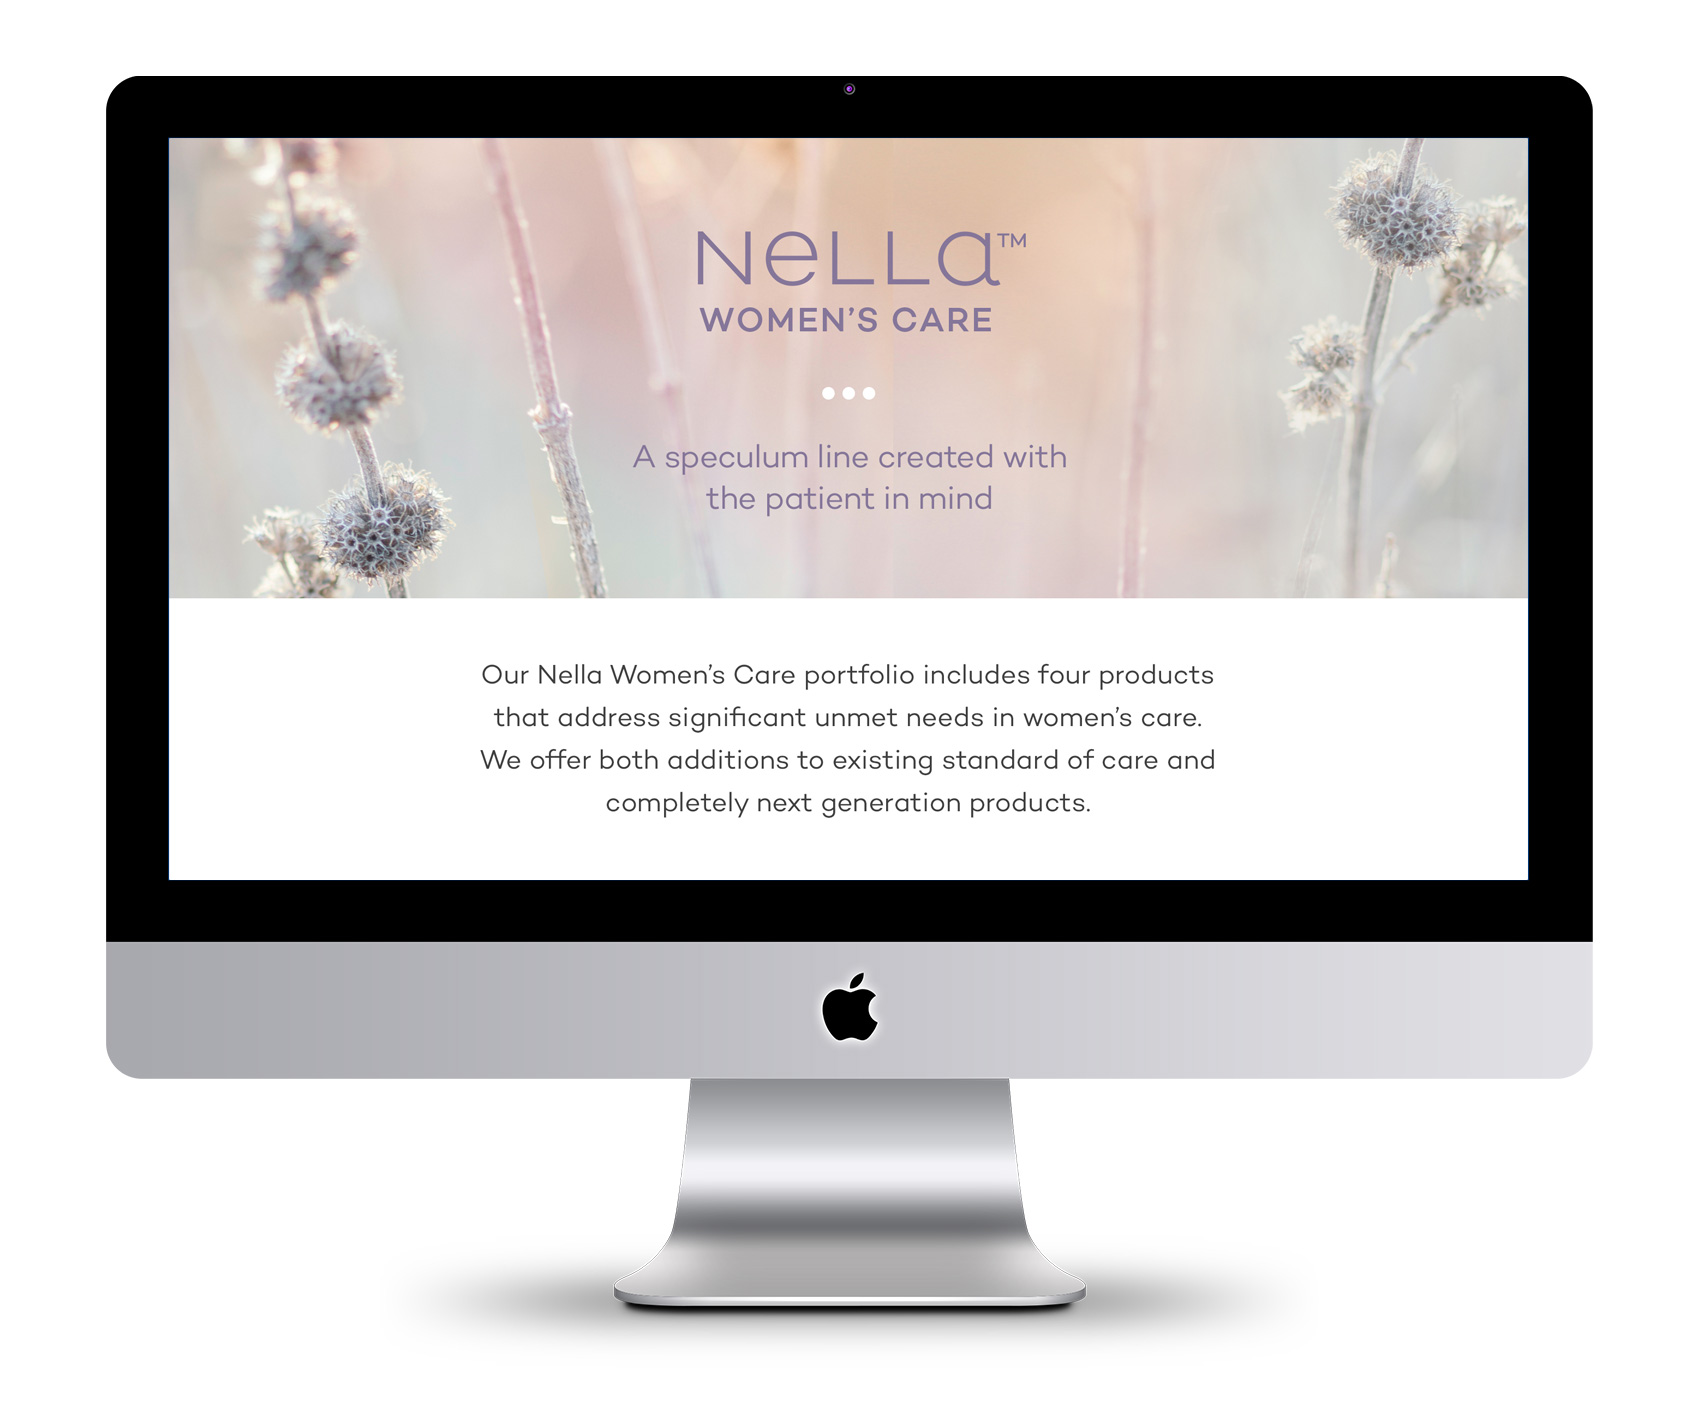 Product page for Nella, Ceek's first product for women's healthcare.